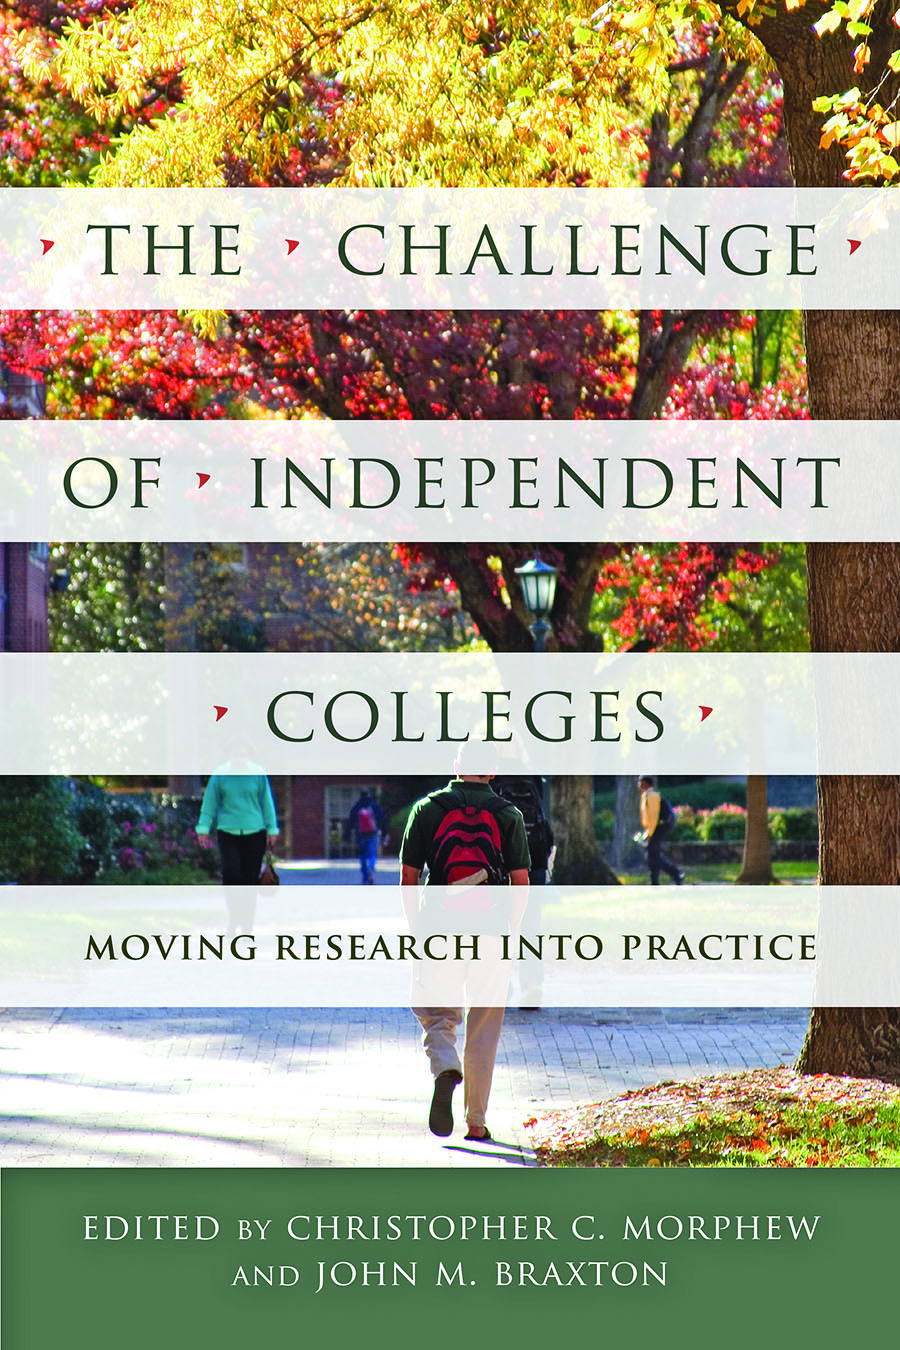 The Challenge of Independent Colleges